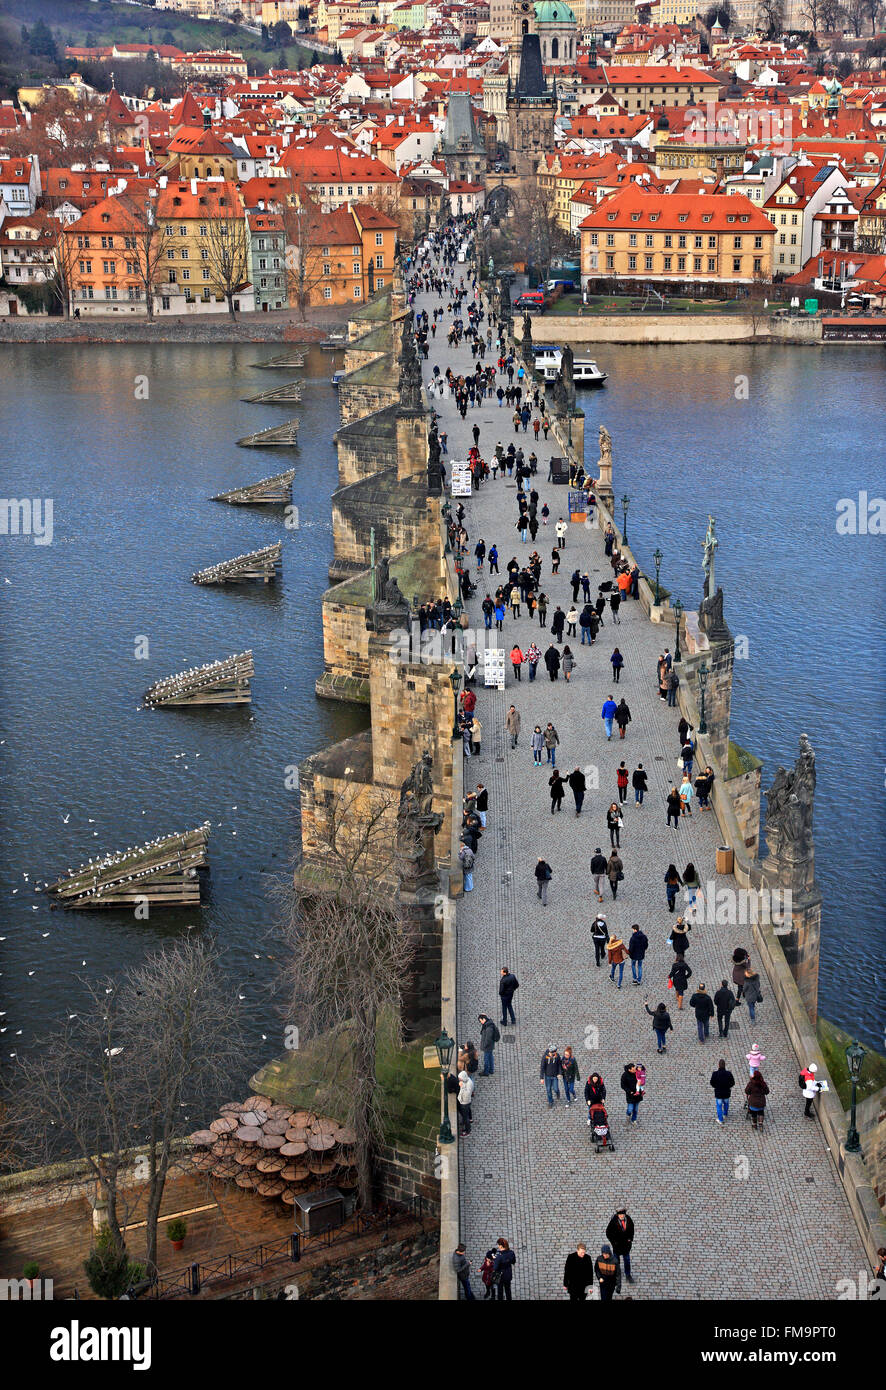 Charles' Bridge, Vltava river,  and Mala Strana. View from one of the Towers of the bridge (on the side of the - Stock Image